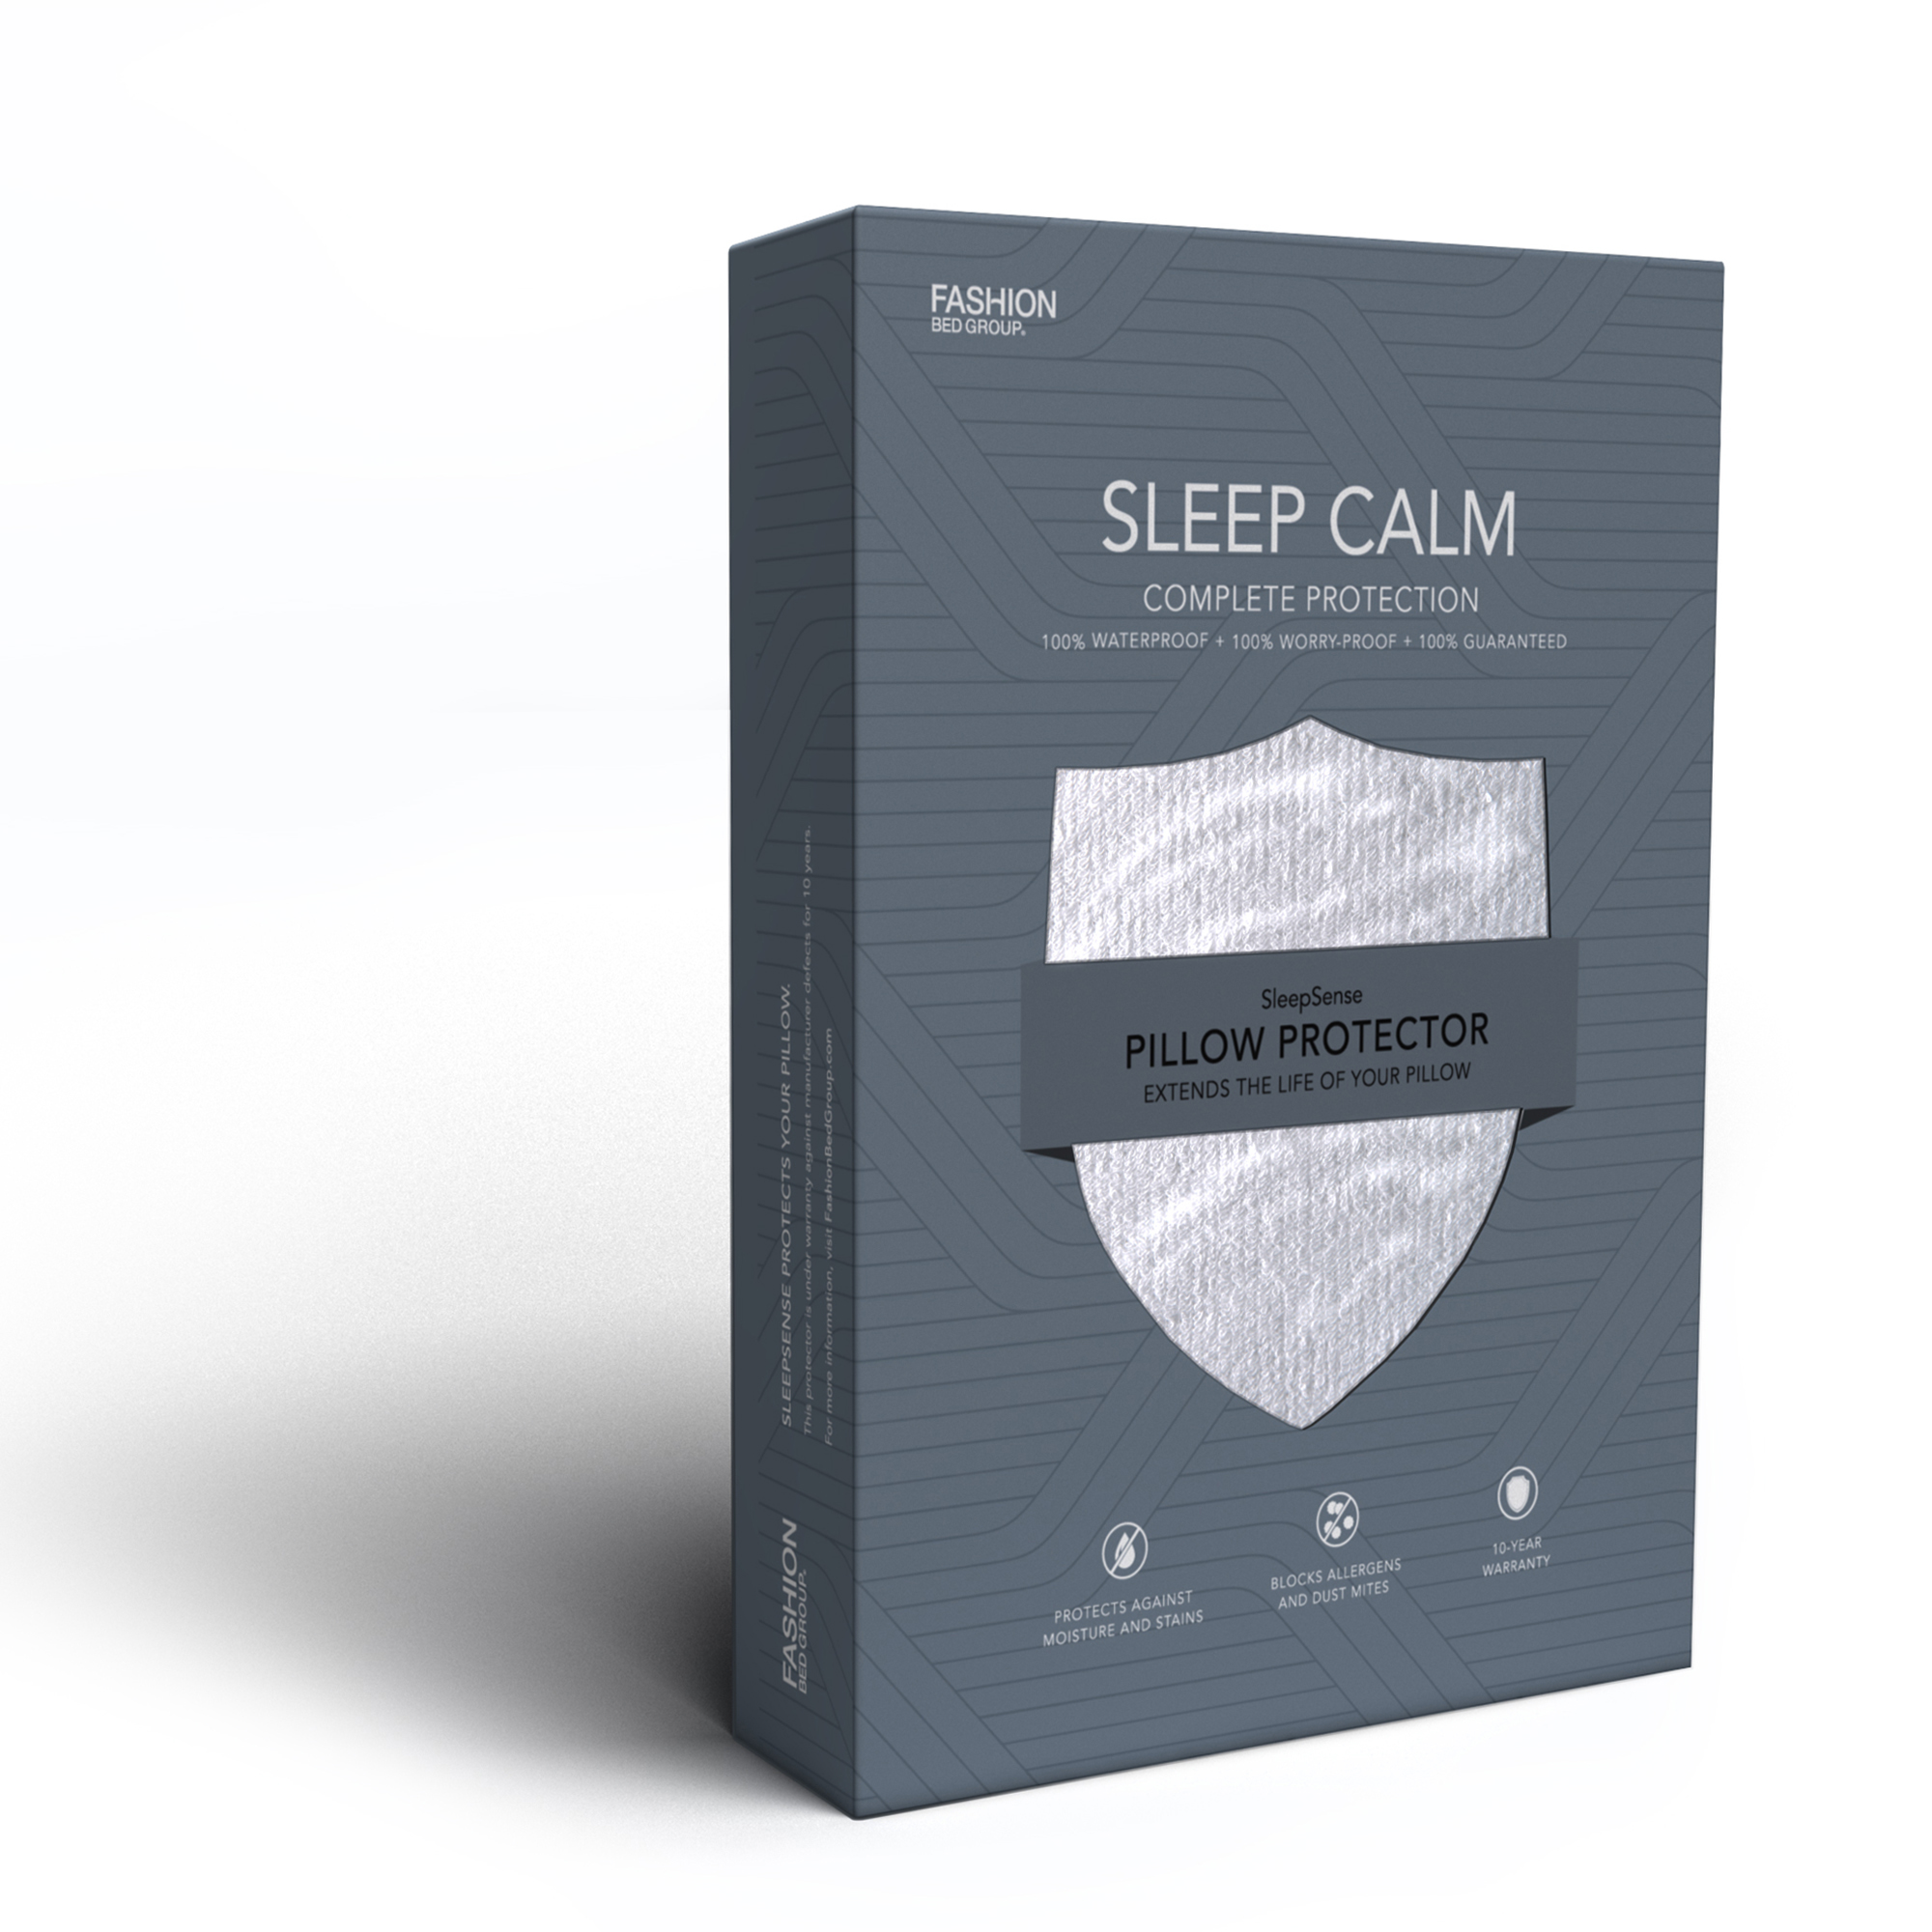 Sleep Calm Pillow Protector with Stain and Dust Mite Defense, King by Fashion Bed Group